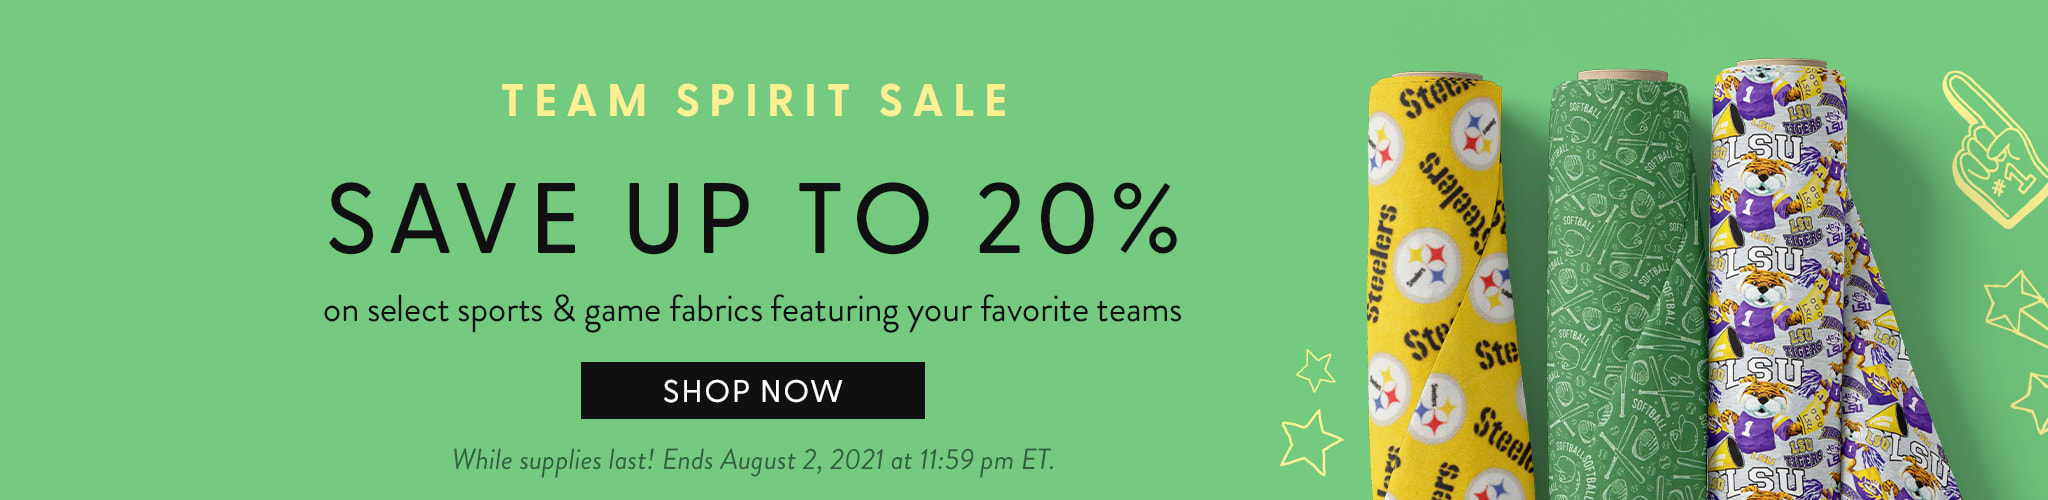 Team spirit sale. Save up to 20%  on select sports & game fabrics featuring your favorite teams